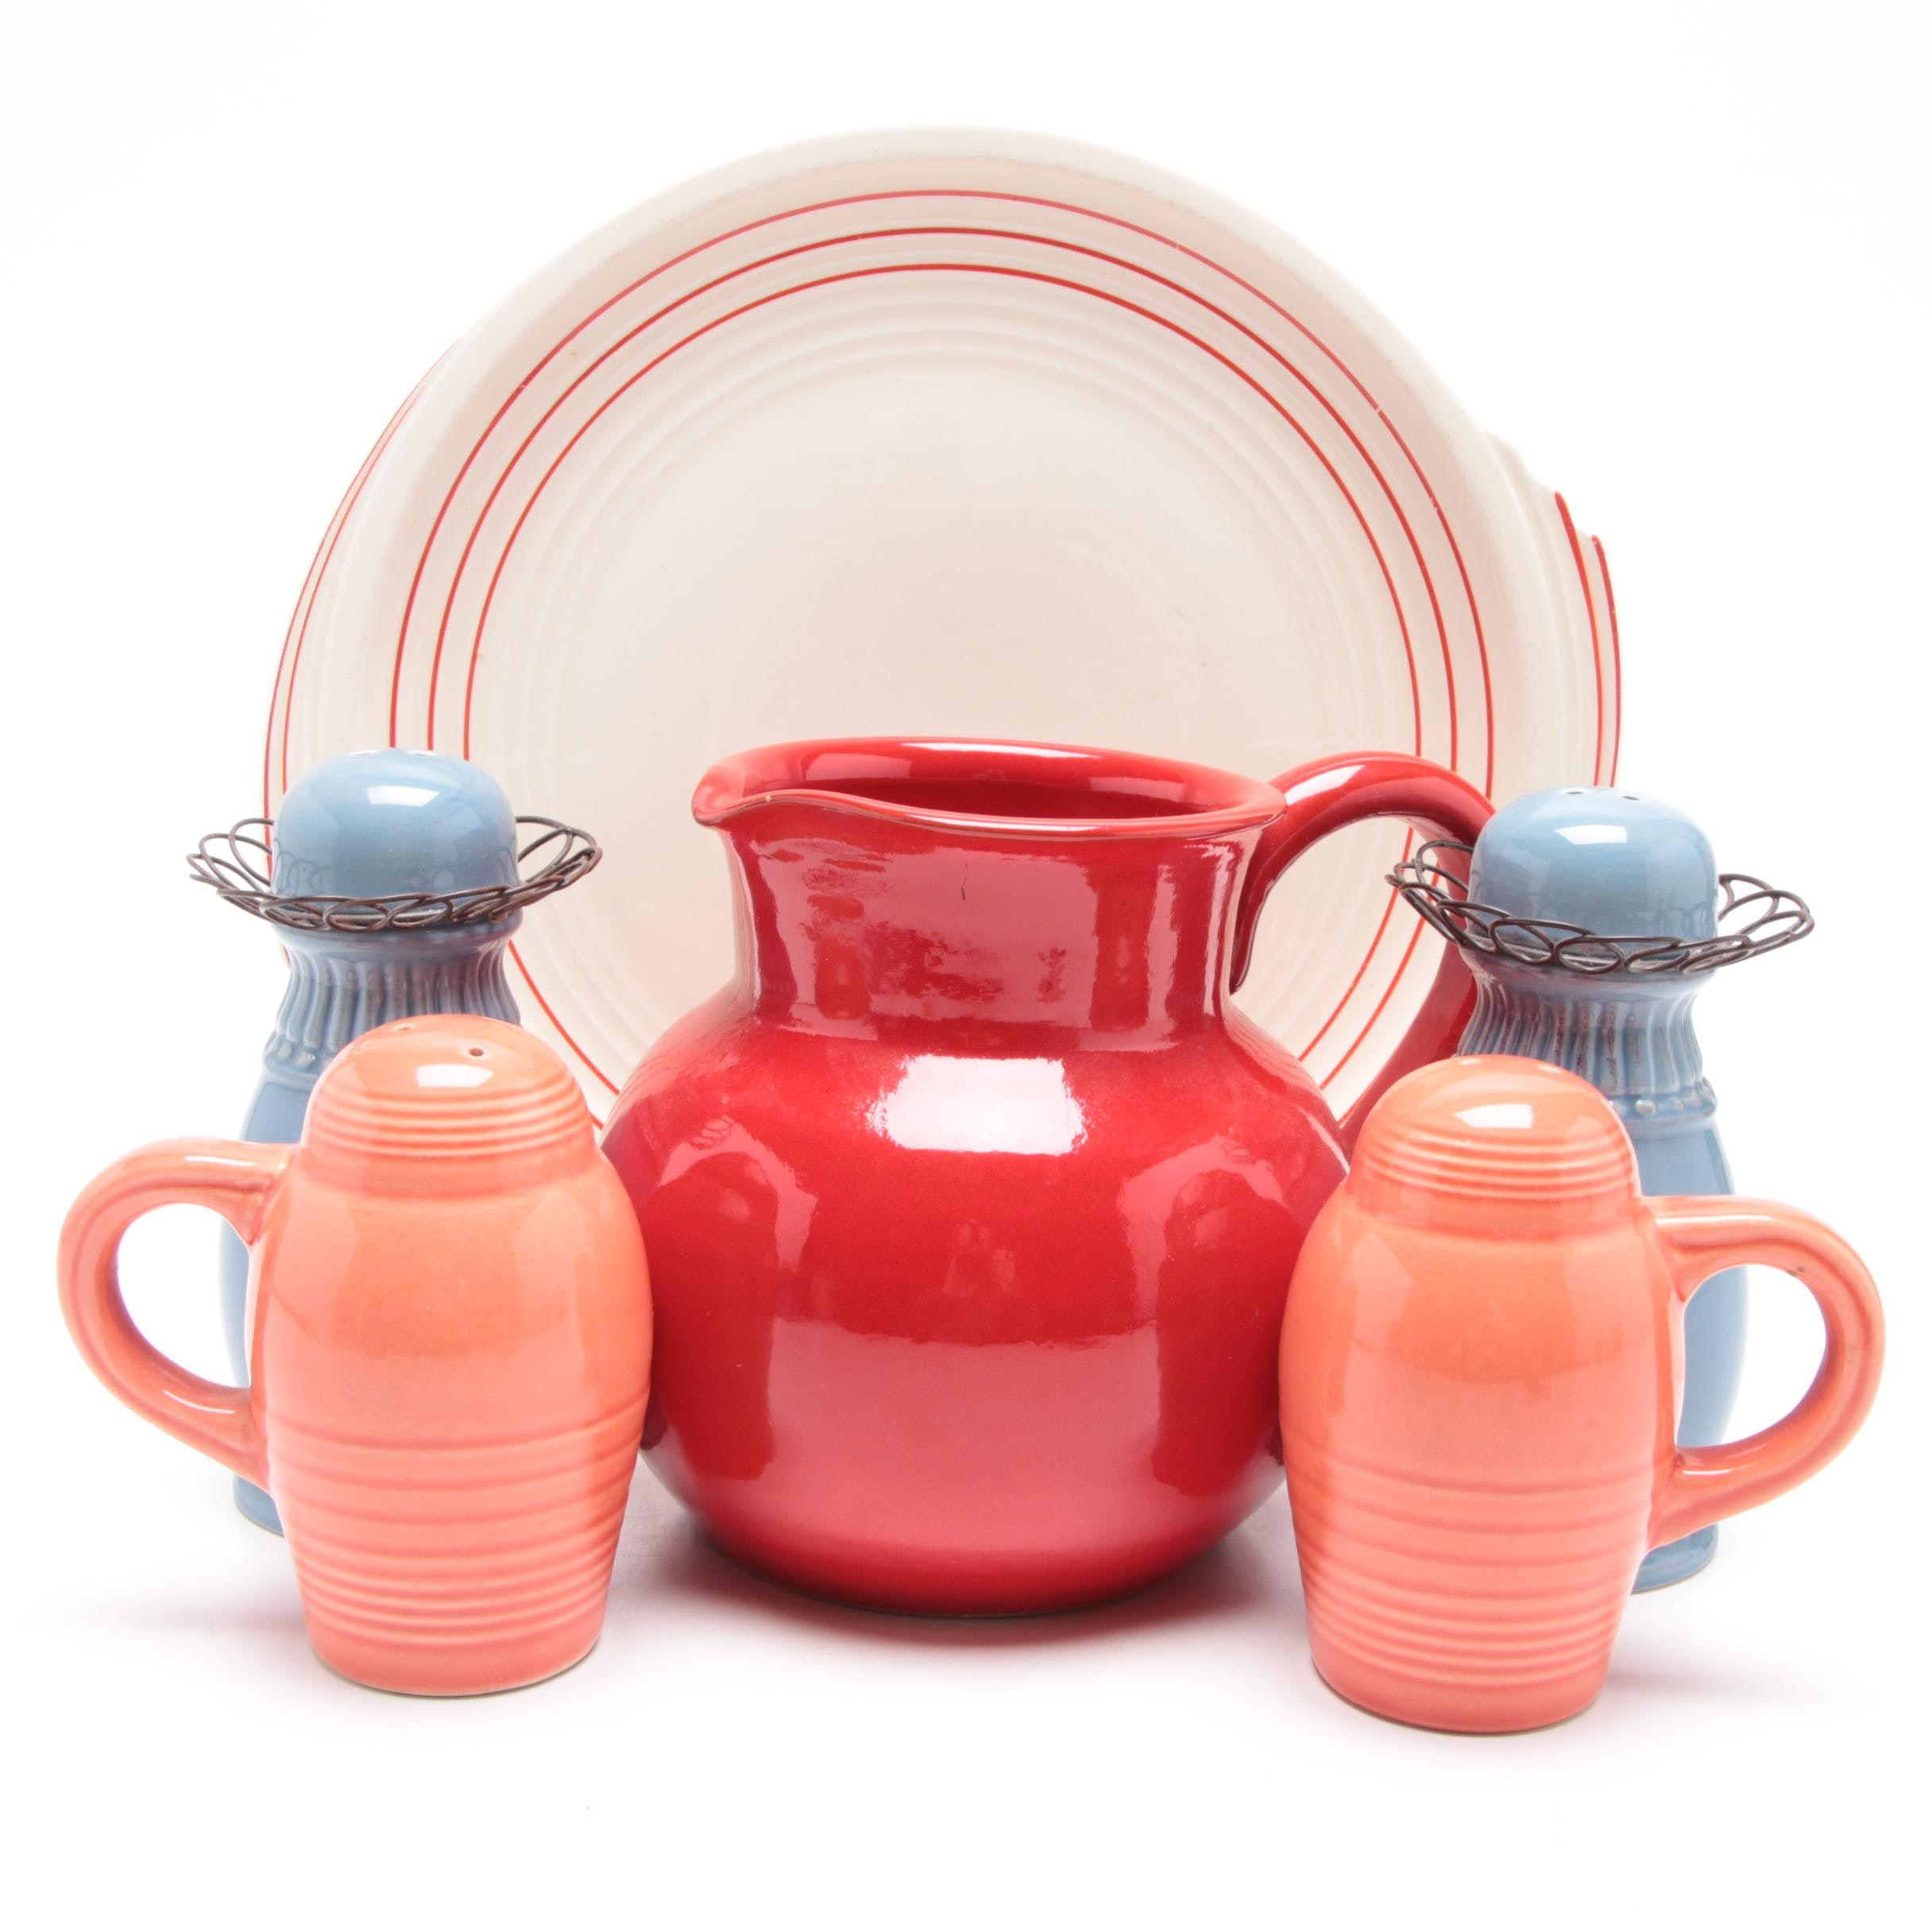 Vintage Ceramic Pitcher, Shakers, and Plate